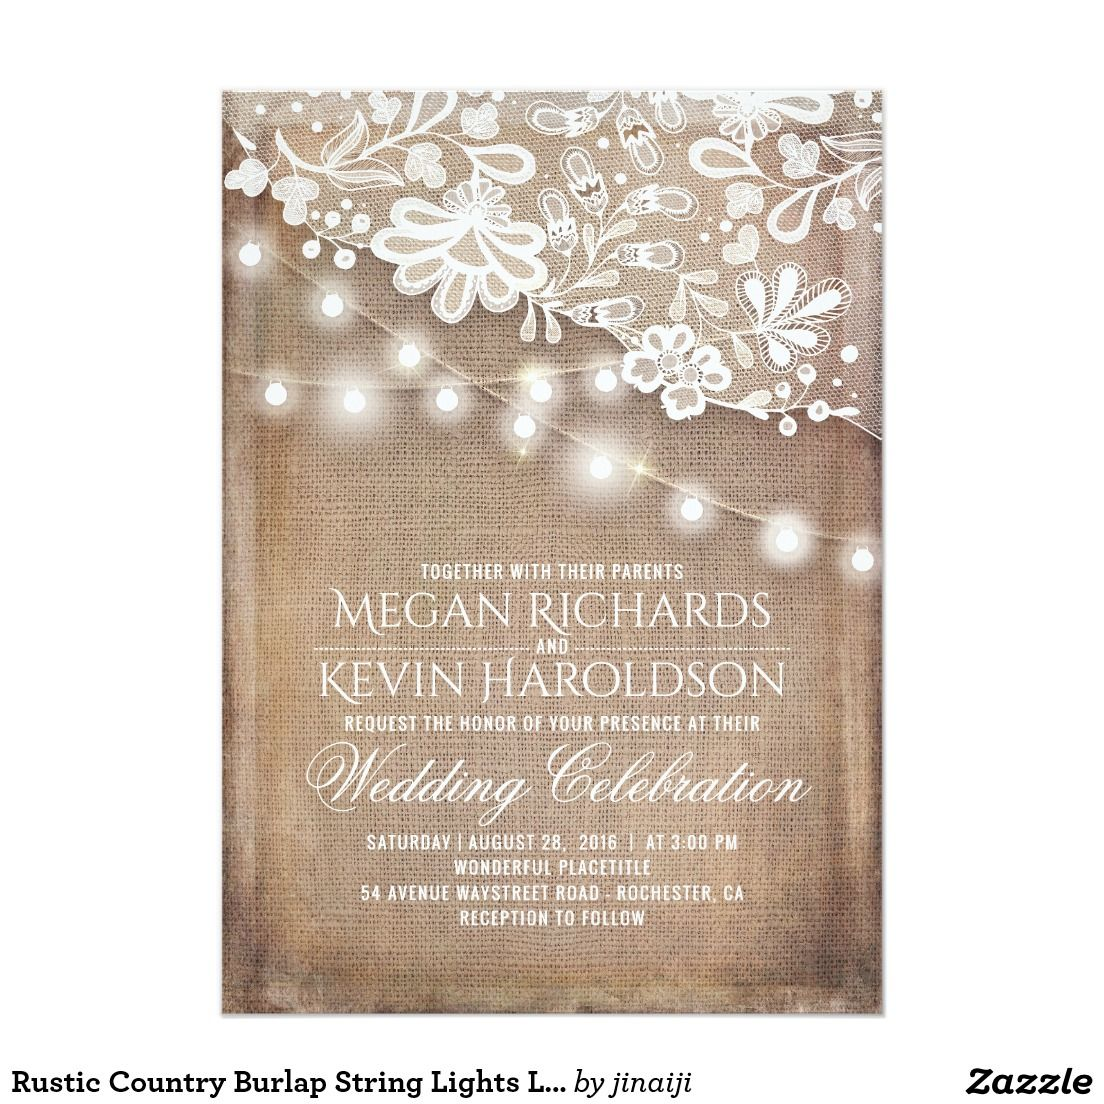 Rustic country burlap string lights lace wedding card - Rustic Country Burlap String Lights Lace Wedding Card